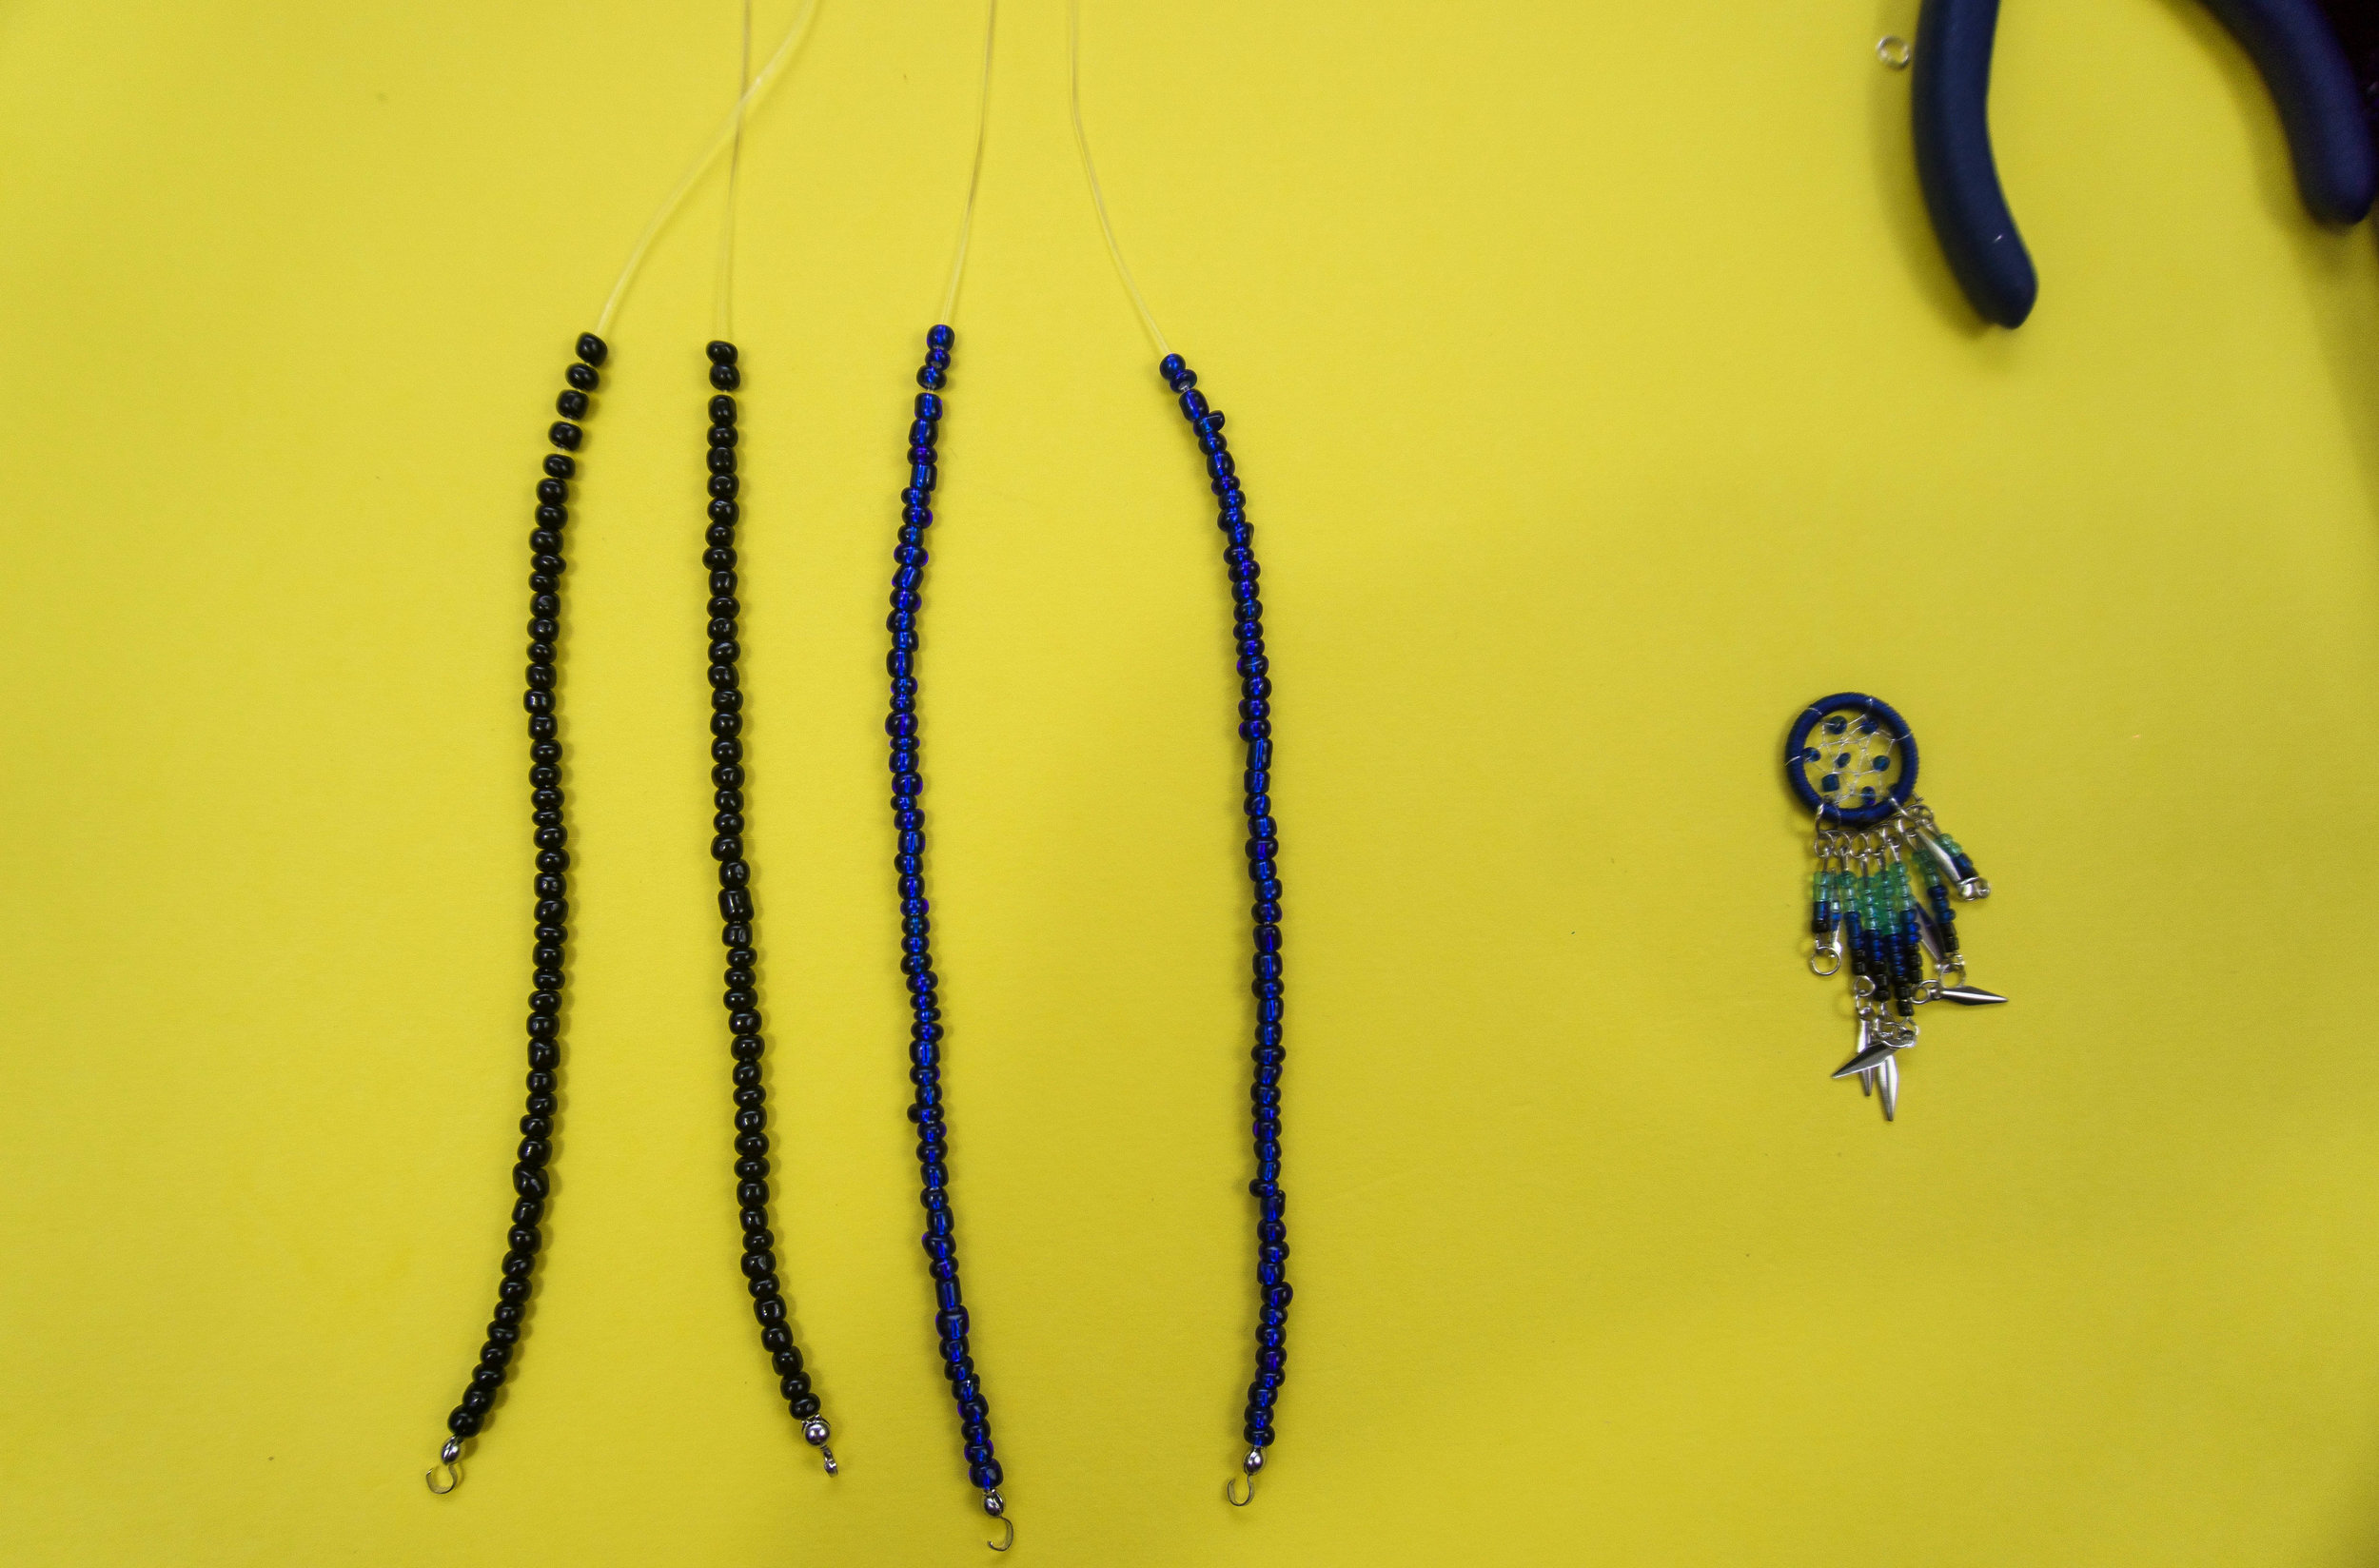 DIY choker necklace with a blue dreamcatcher pendant to wear with your outfit to Coachella Music festival. Cute for a boho chic look or even a hippie chick.